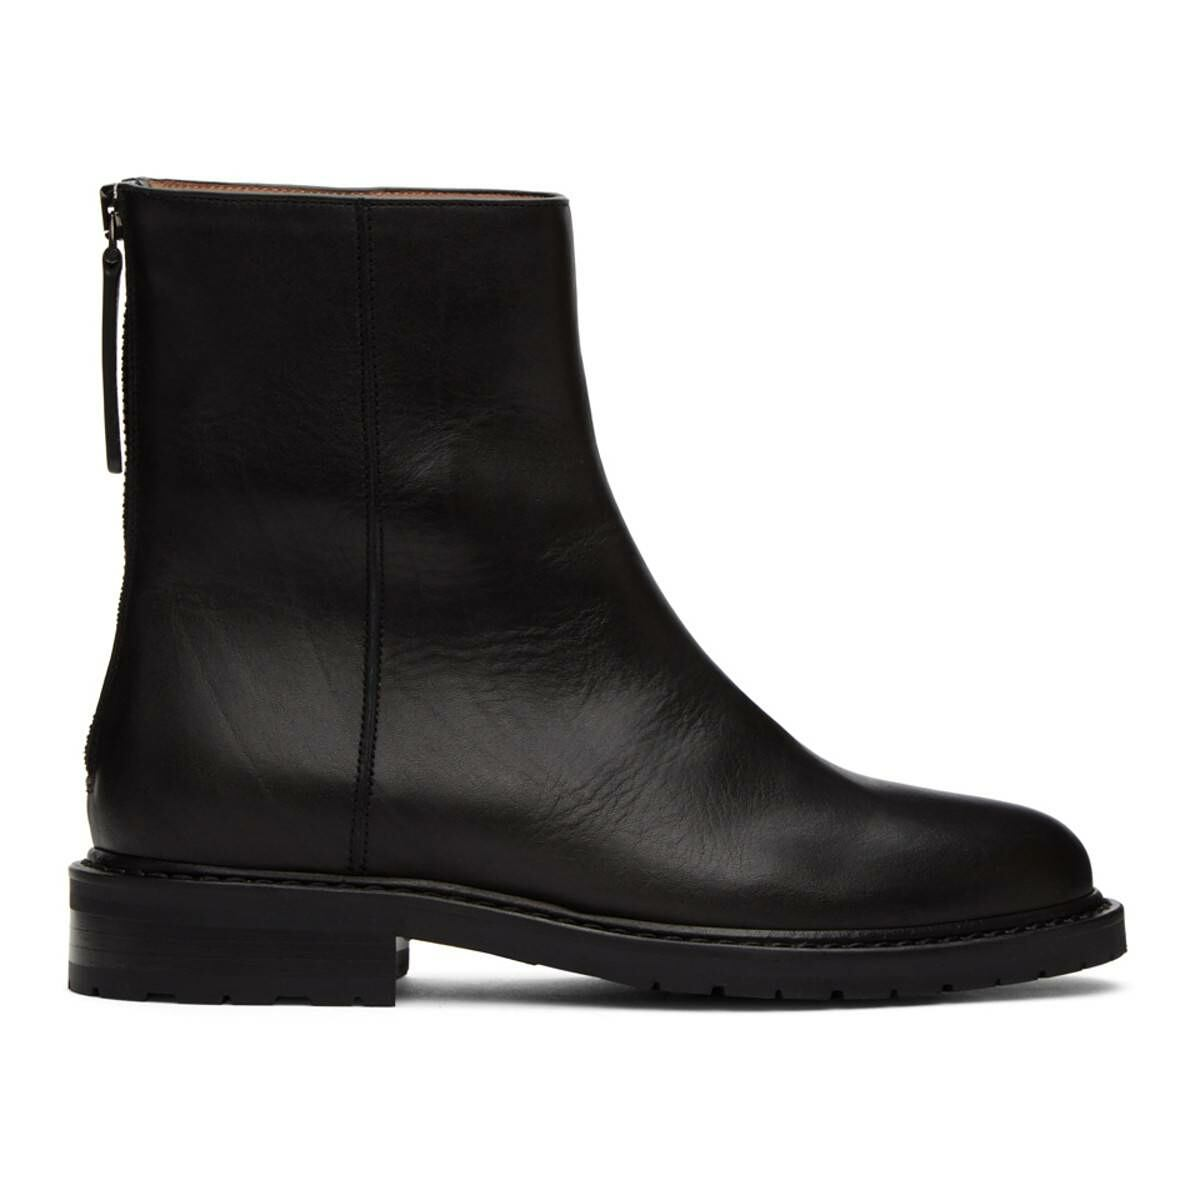 Legres Black Leather Officer Boots Ssense USA WOMEN Women SHOES Womens ANKLE BOOTS